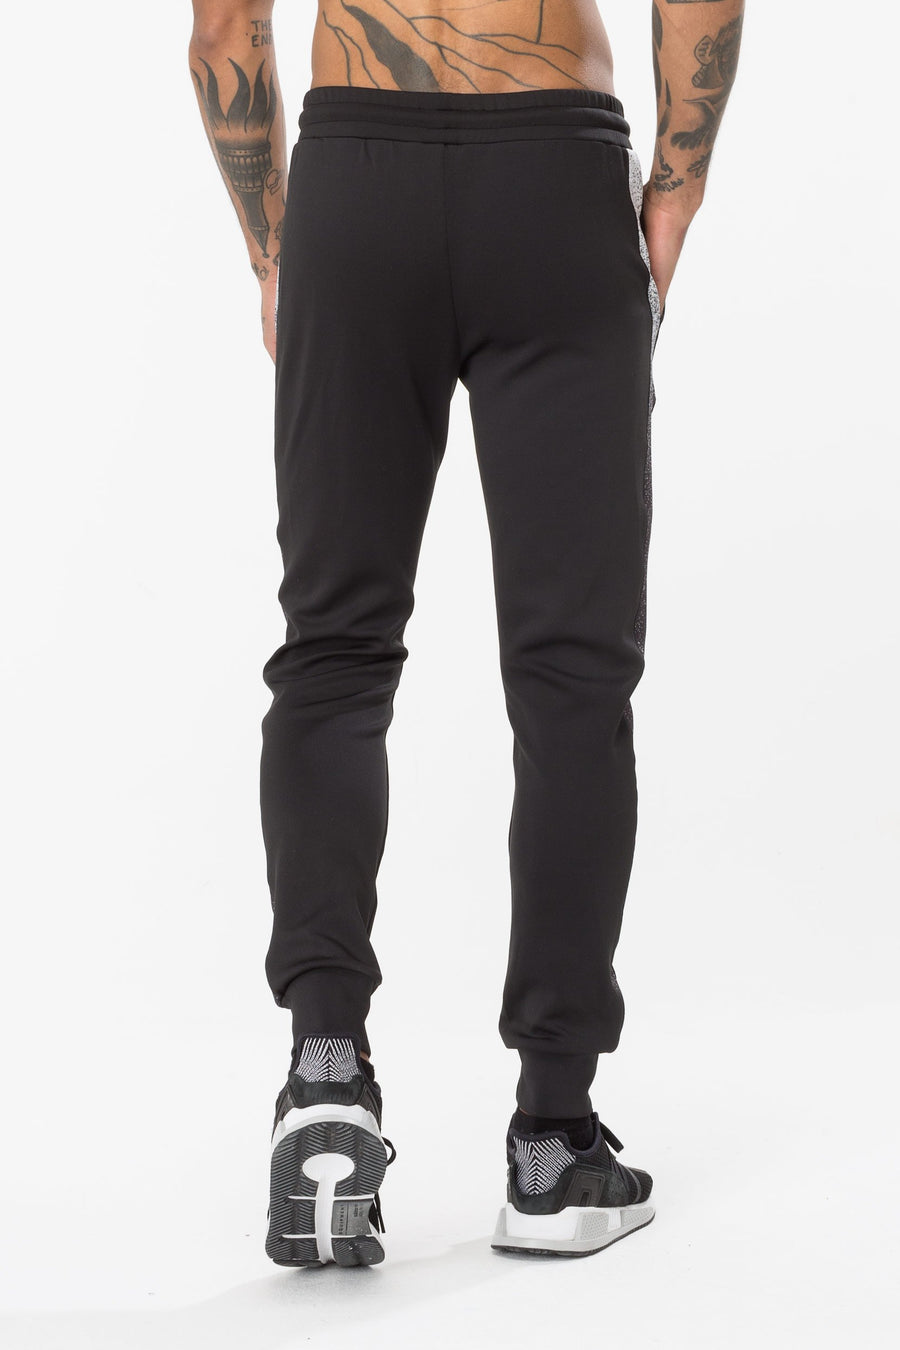 HYPE-SPECKLE POLY STRIPE -Men's Joggers